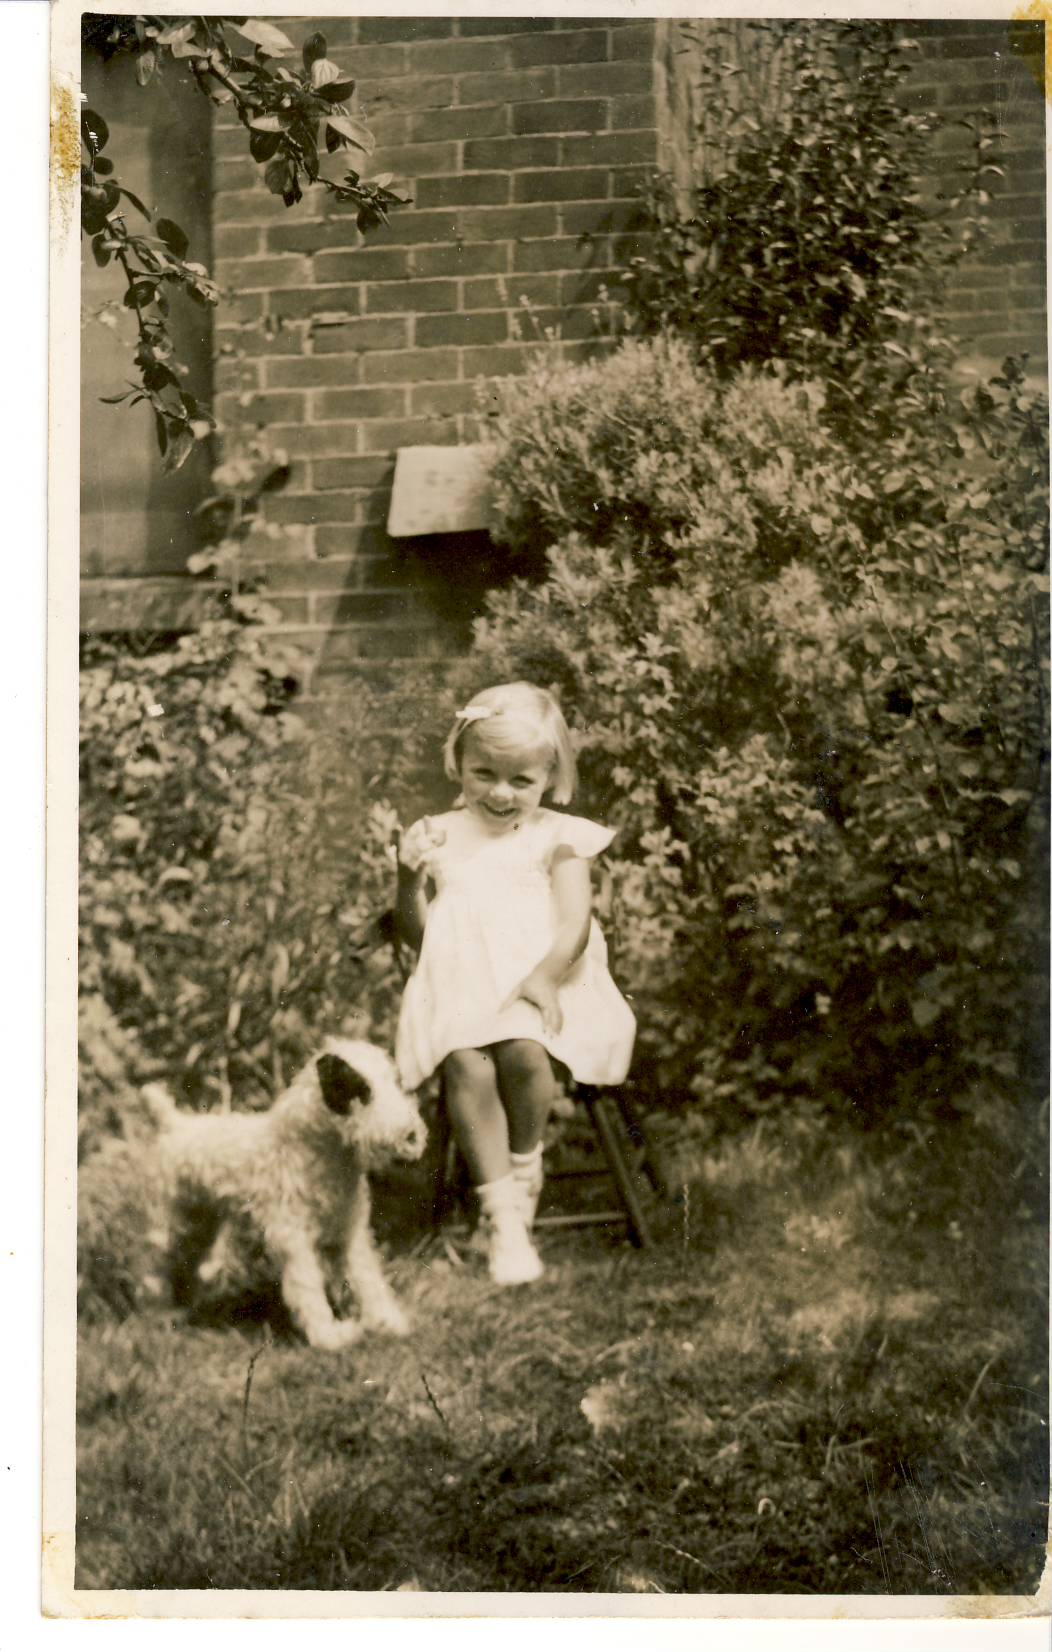 Pauline age 3 with stuffed toy dog vintage photo postcard Young girl child named on back of photo postcard as Pauline. refP7 Pre-owned in good condition. Unposted.